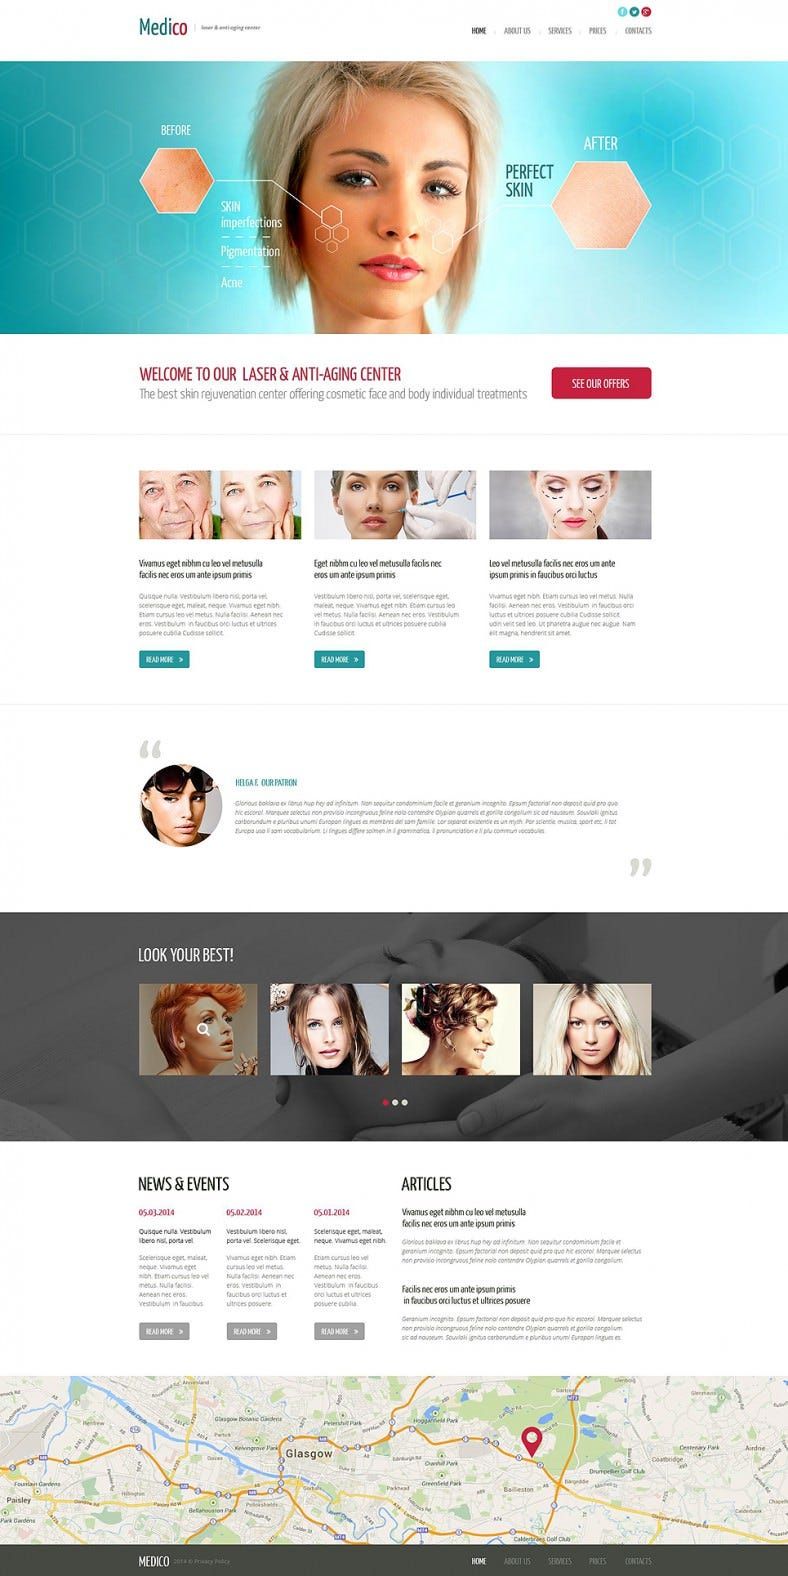 Parallax Effect Website Template for Plastic Surgery